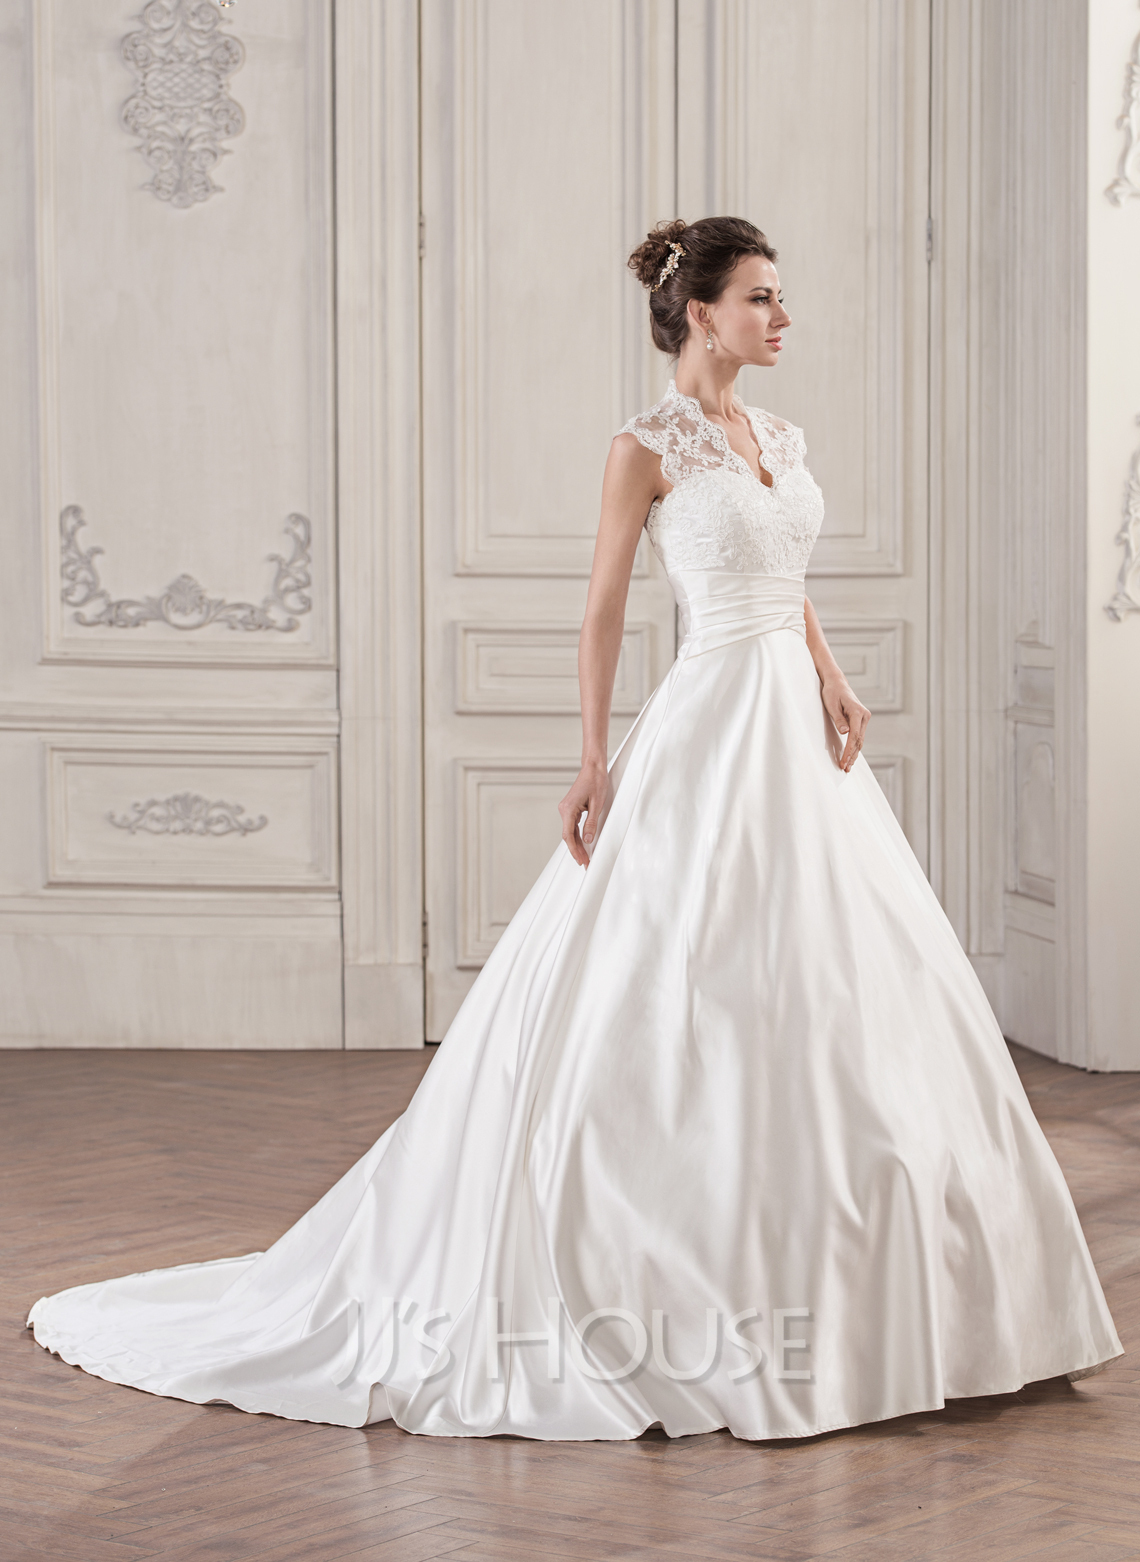 BallGown Vneck Court Train Satin Lace Wedding Dress With Ruffle